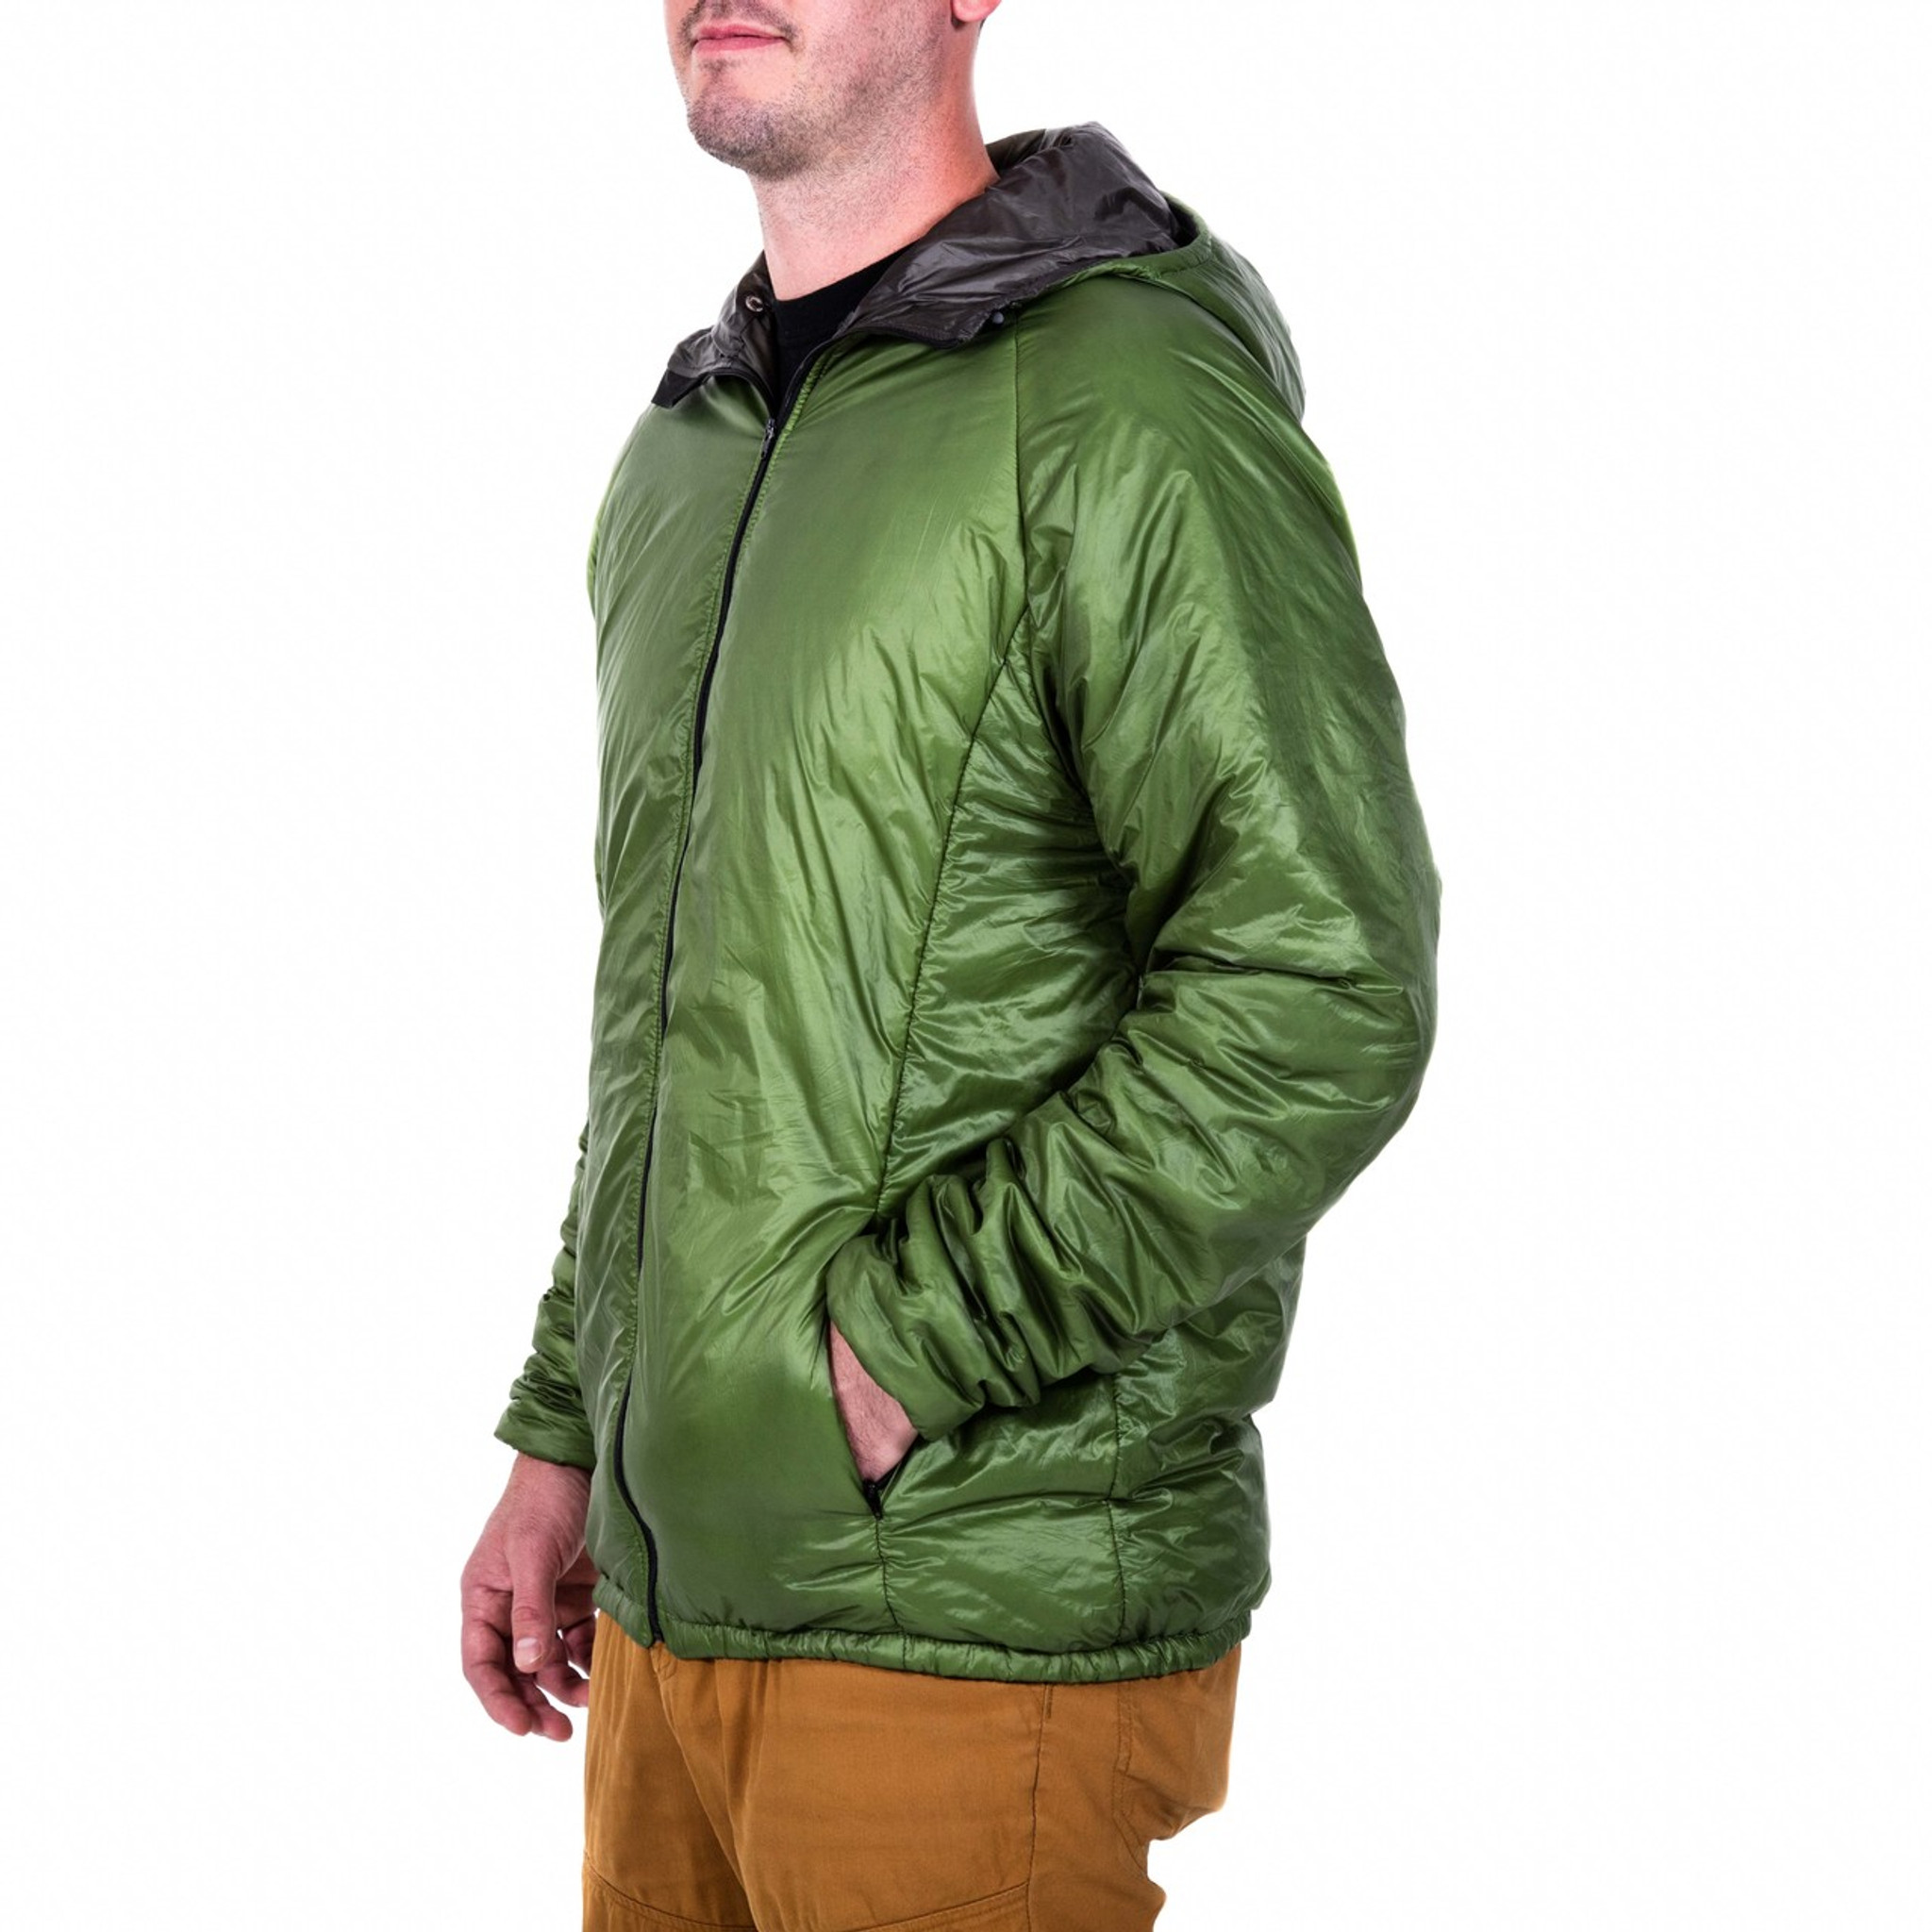 d105e8d7 Men's Torrid APEX Jacket Custom